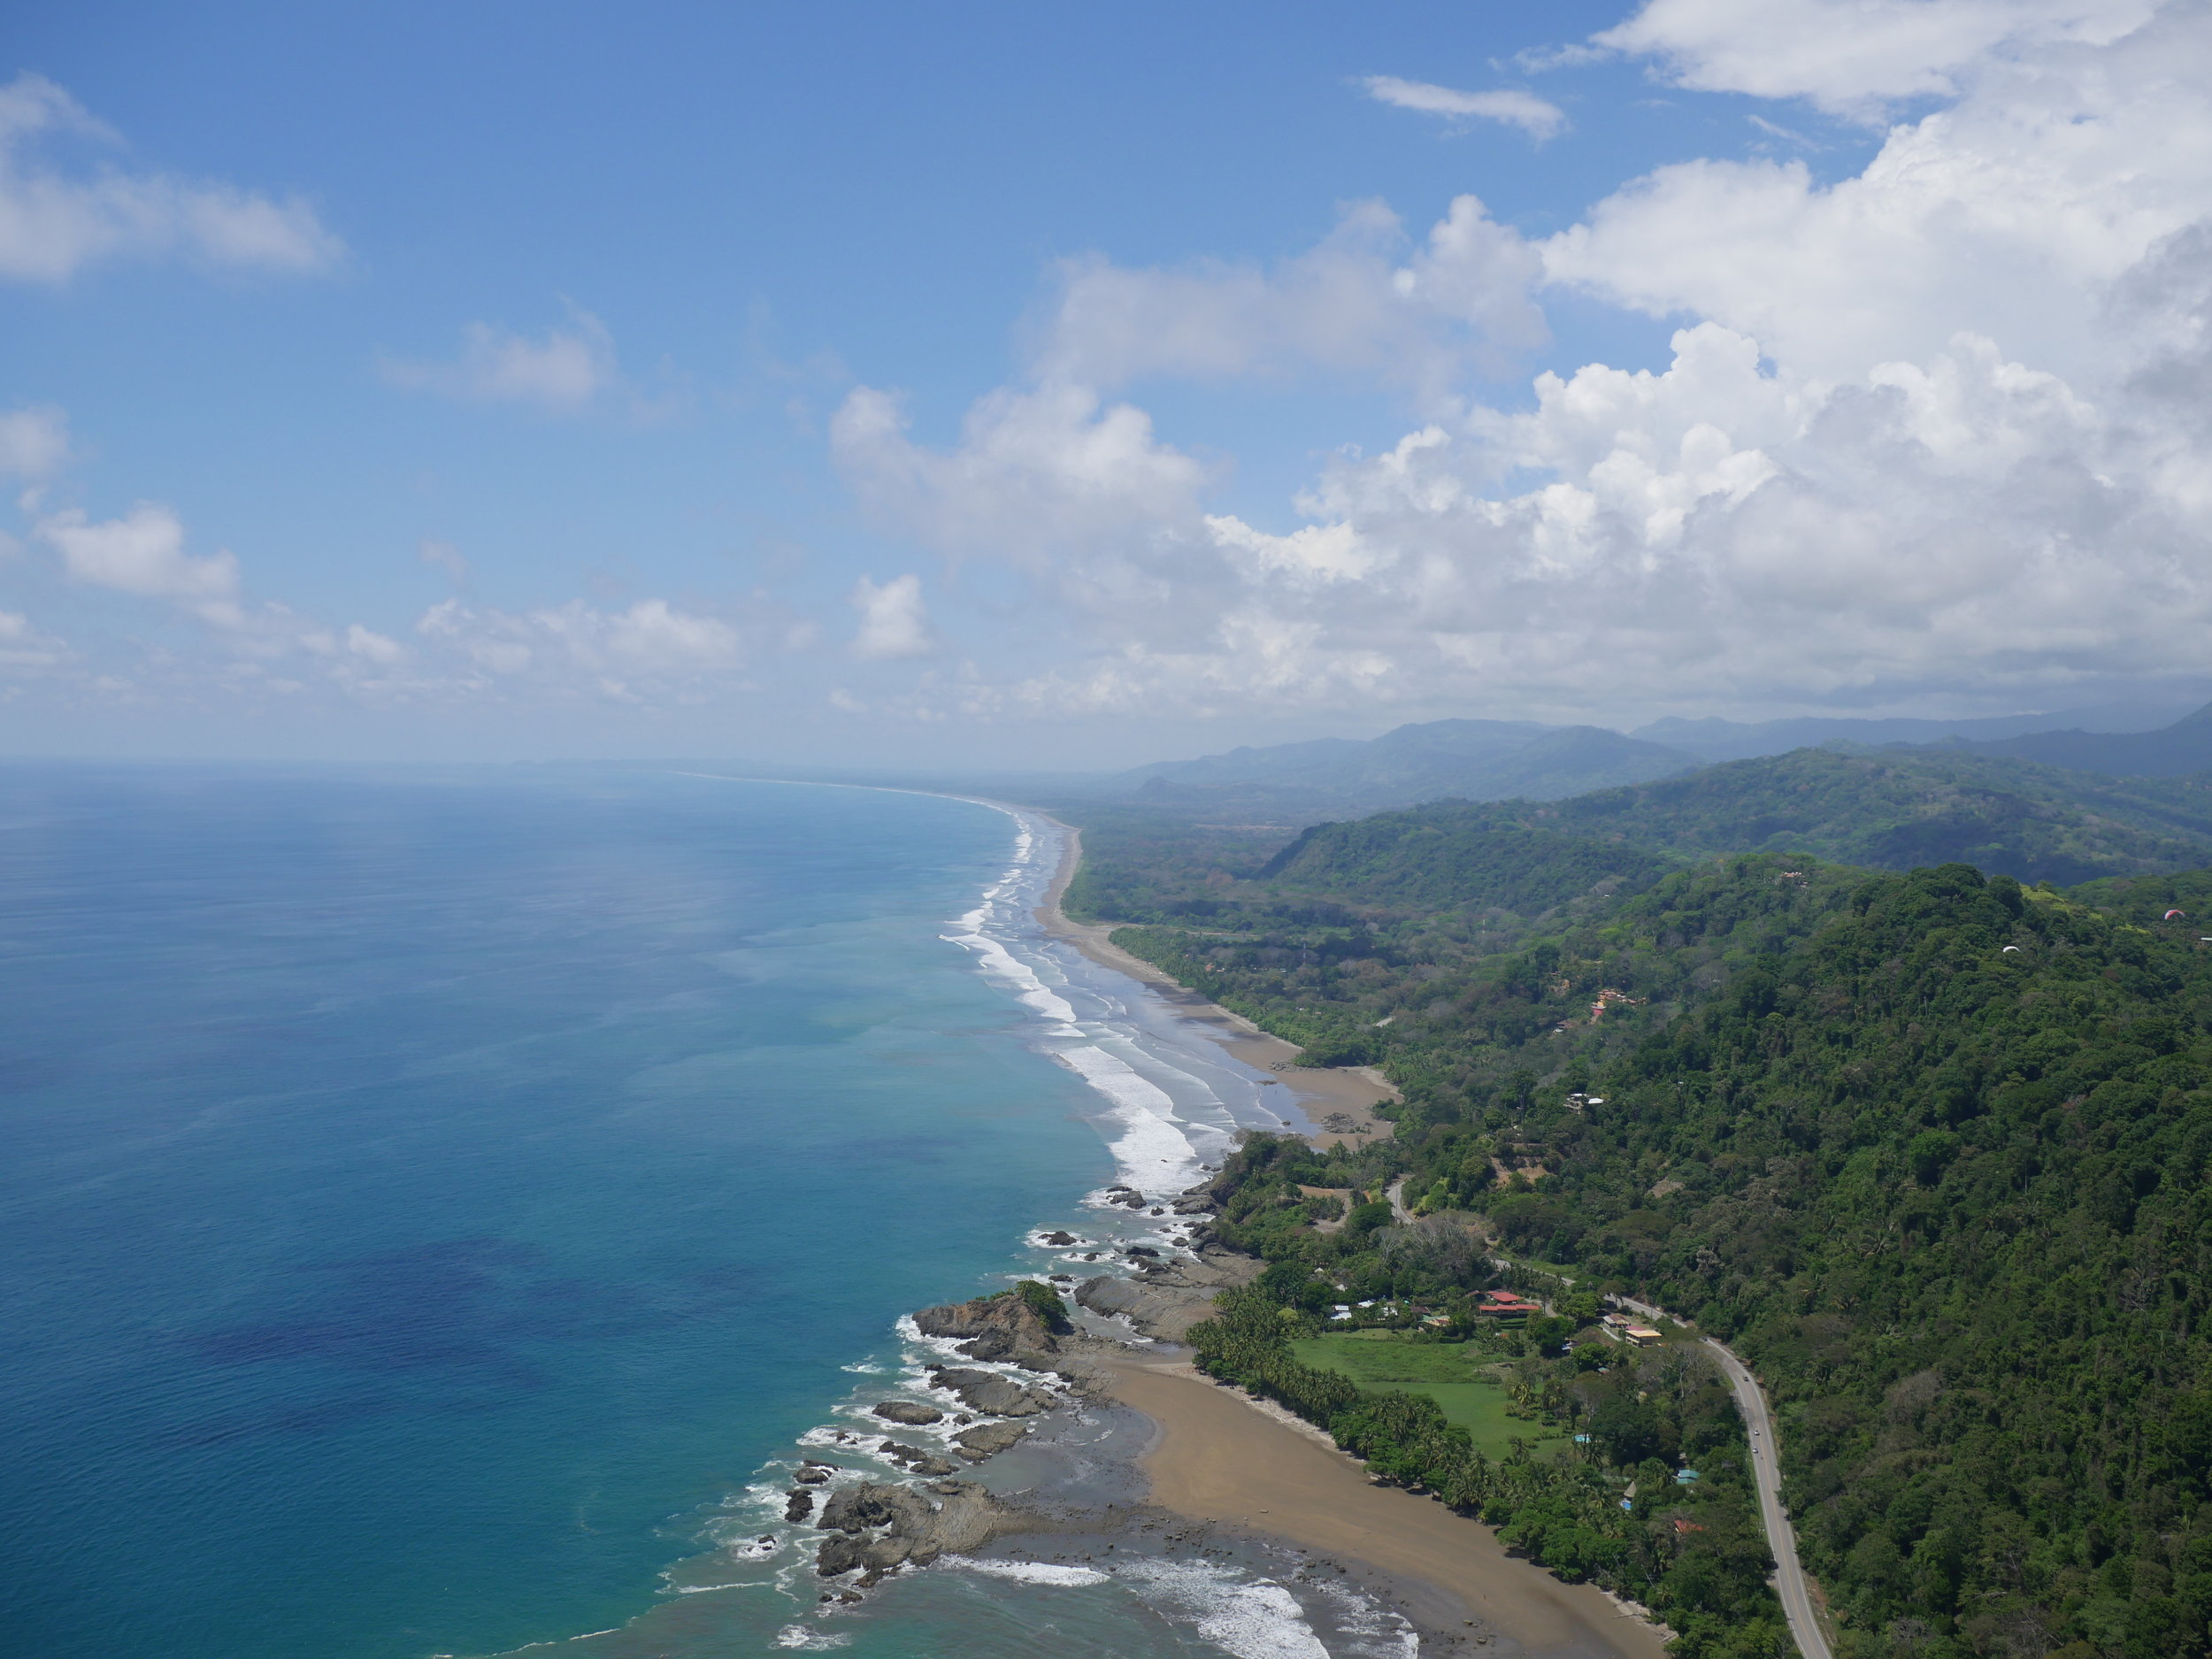 dominical-costa-rica-paragliding-site.jpg